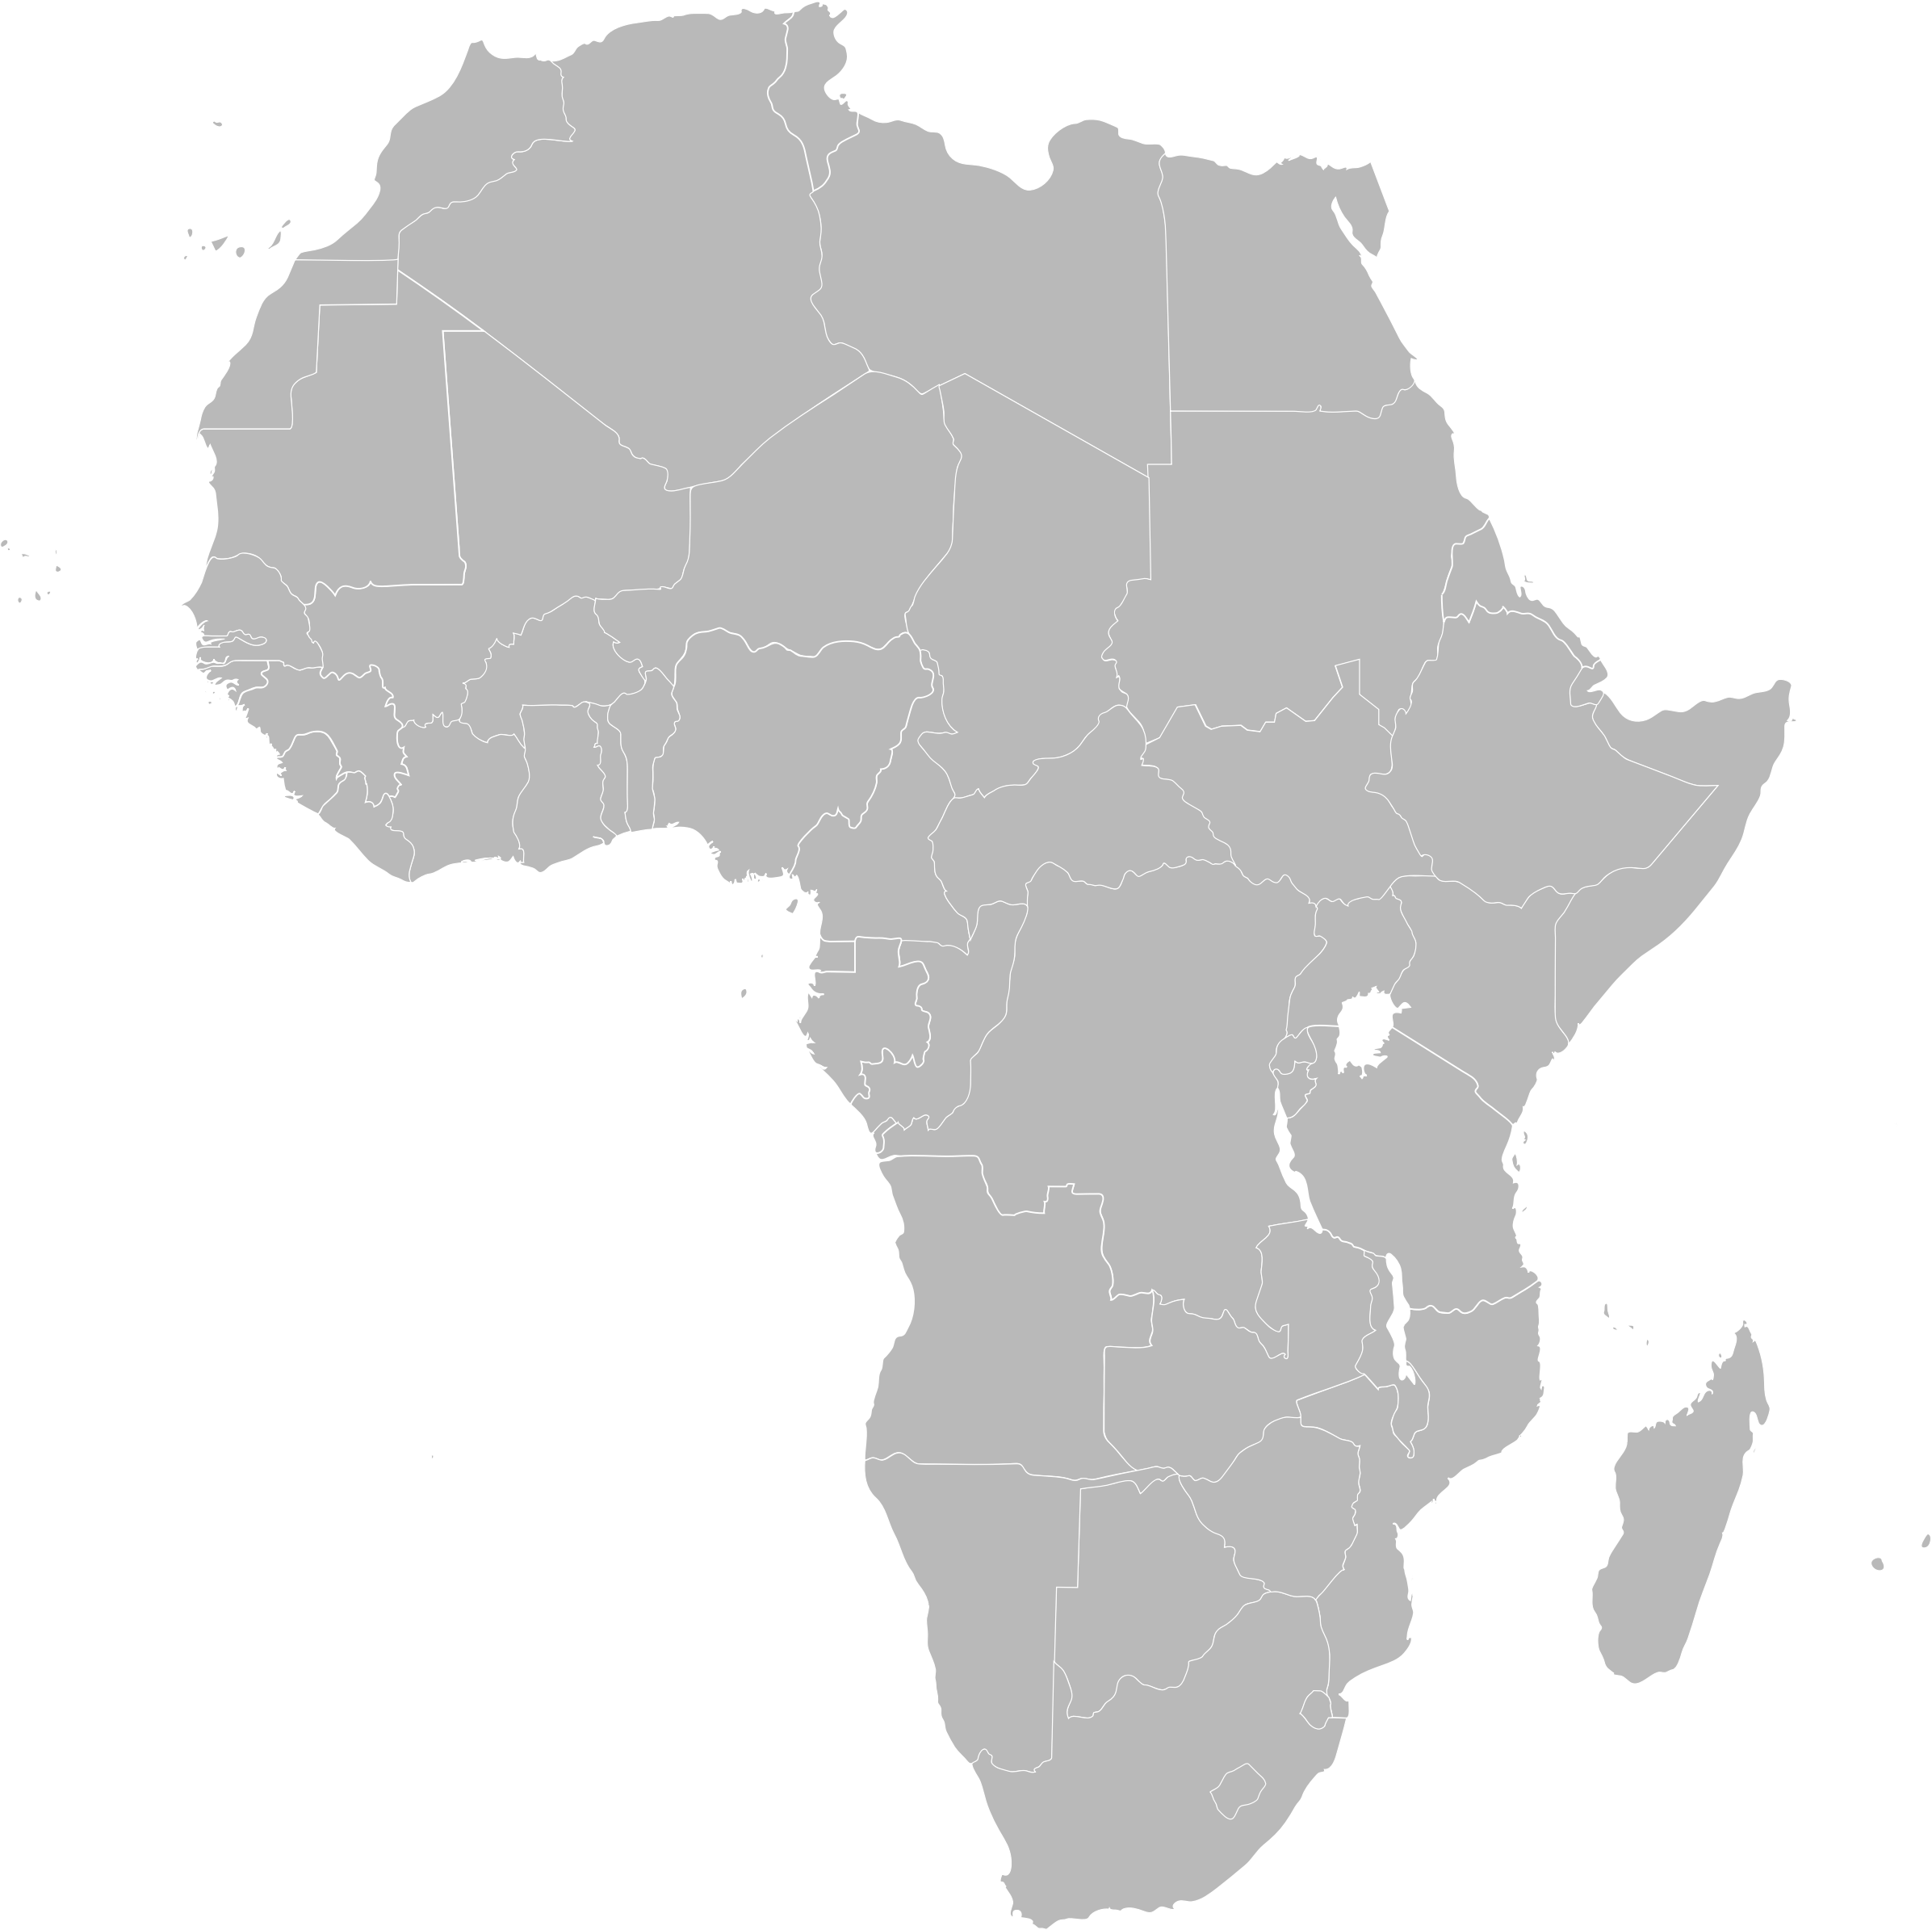 Africa outline png. Map icons free and